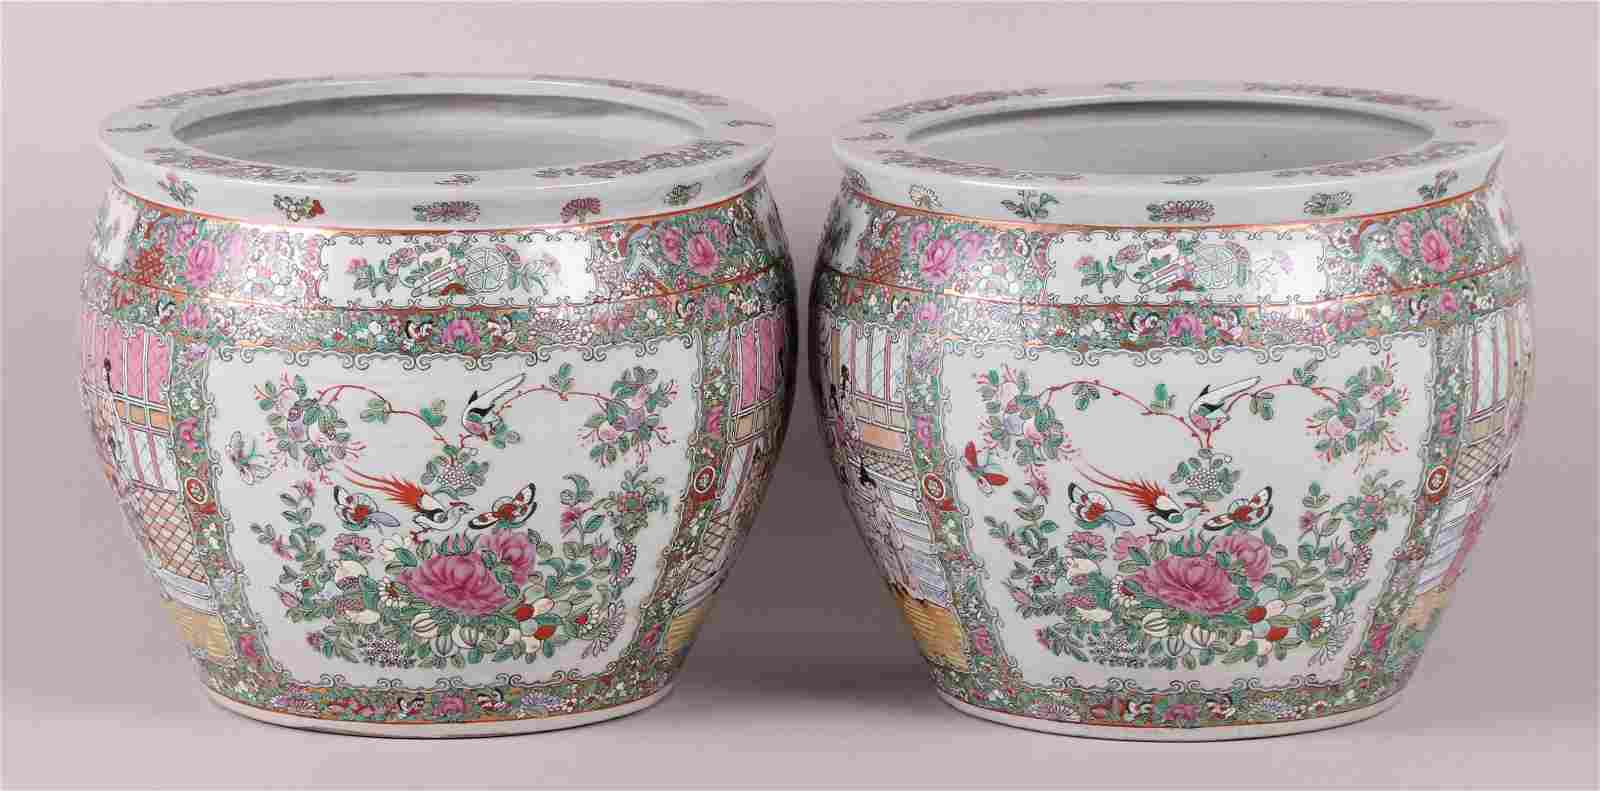 A Pair of Modern Chinese Porcelain Fish Bowls